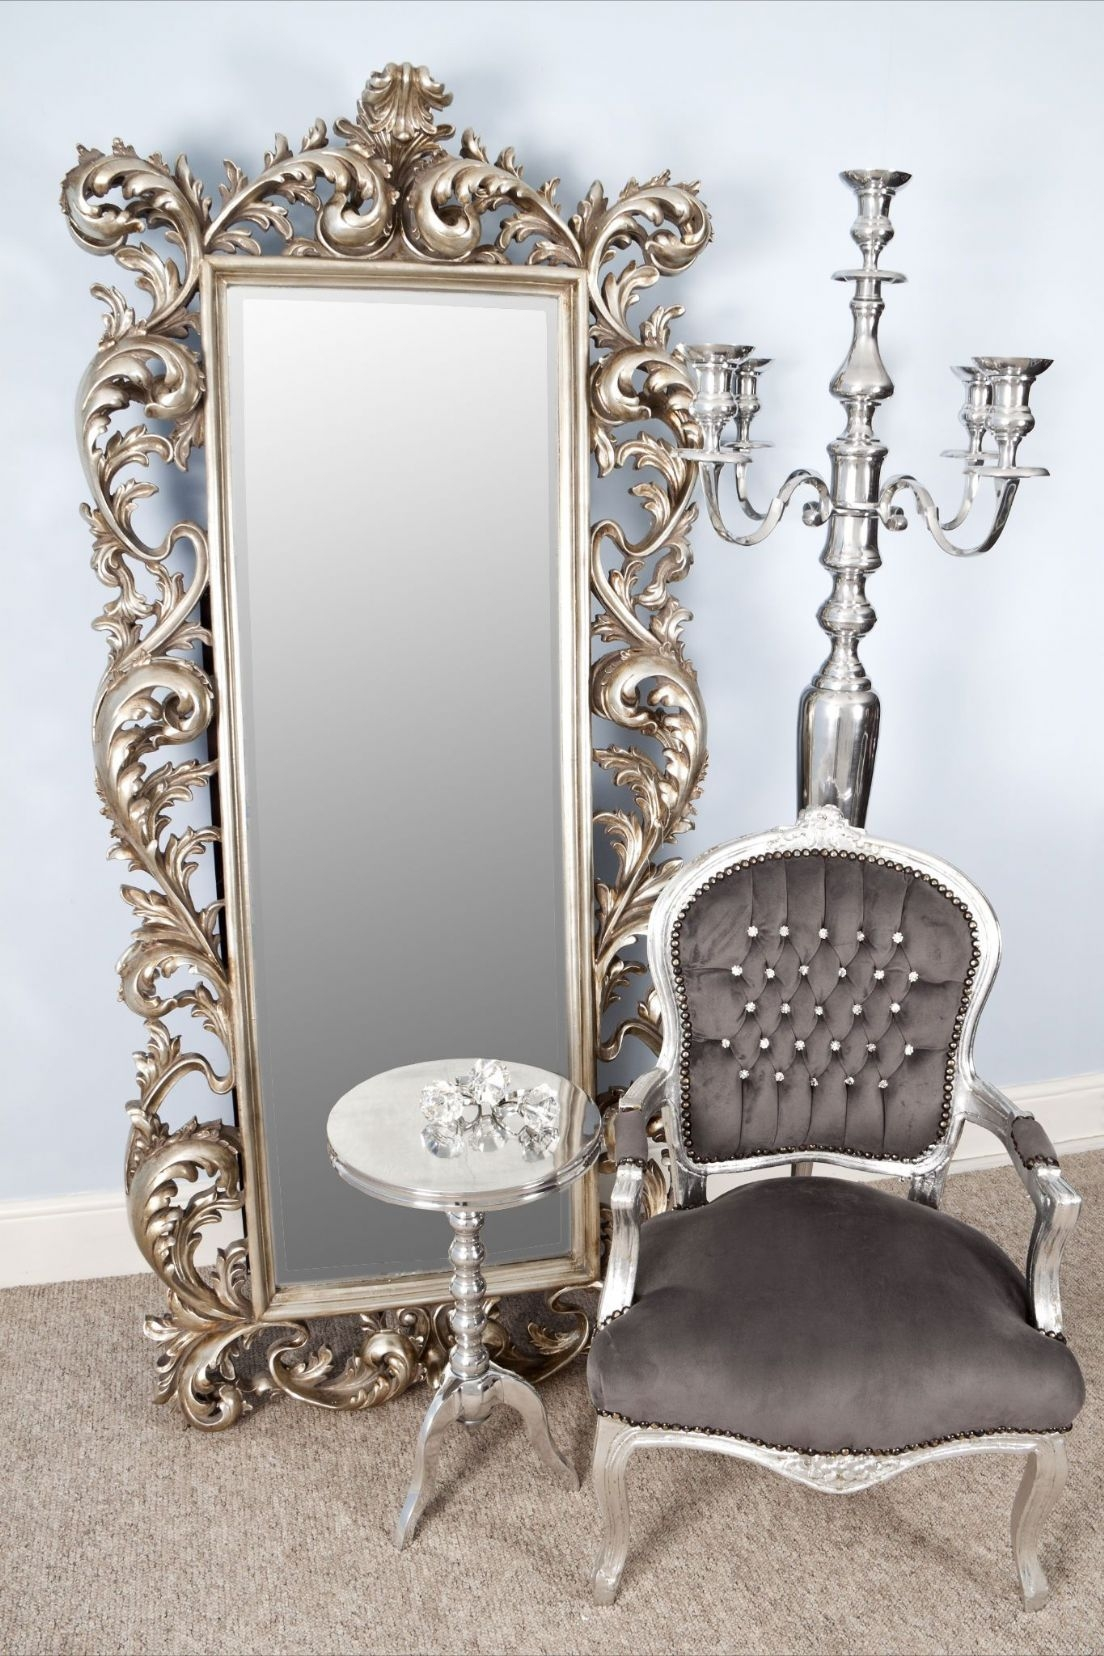 Bedroom Appealing Oversized Mirrors For Home Decoration Ideas Throughout Antique Large Mirrors For Sale (Image 2 of 15)